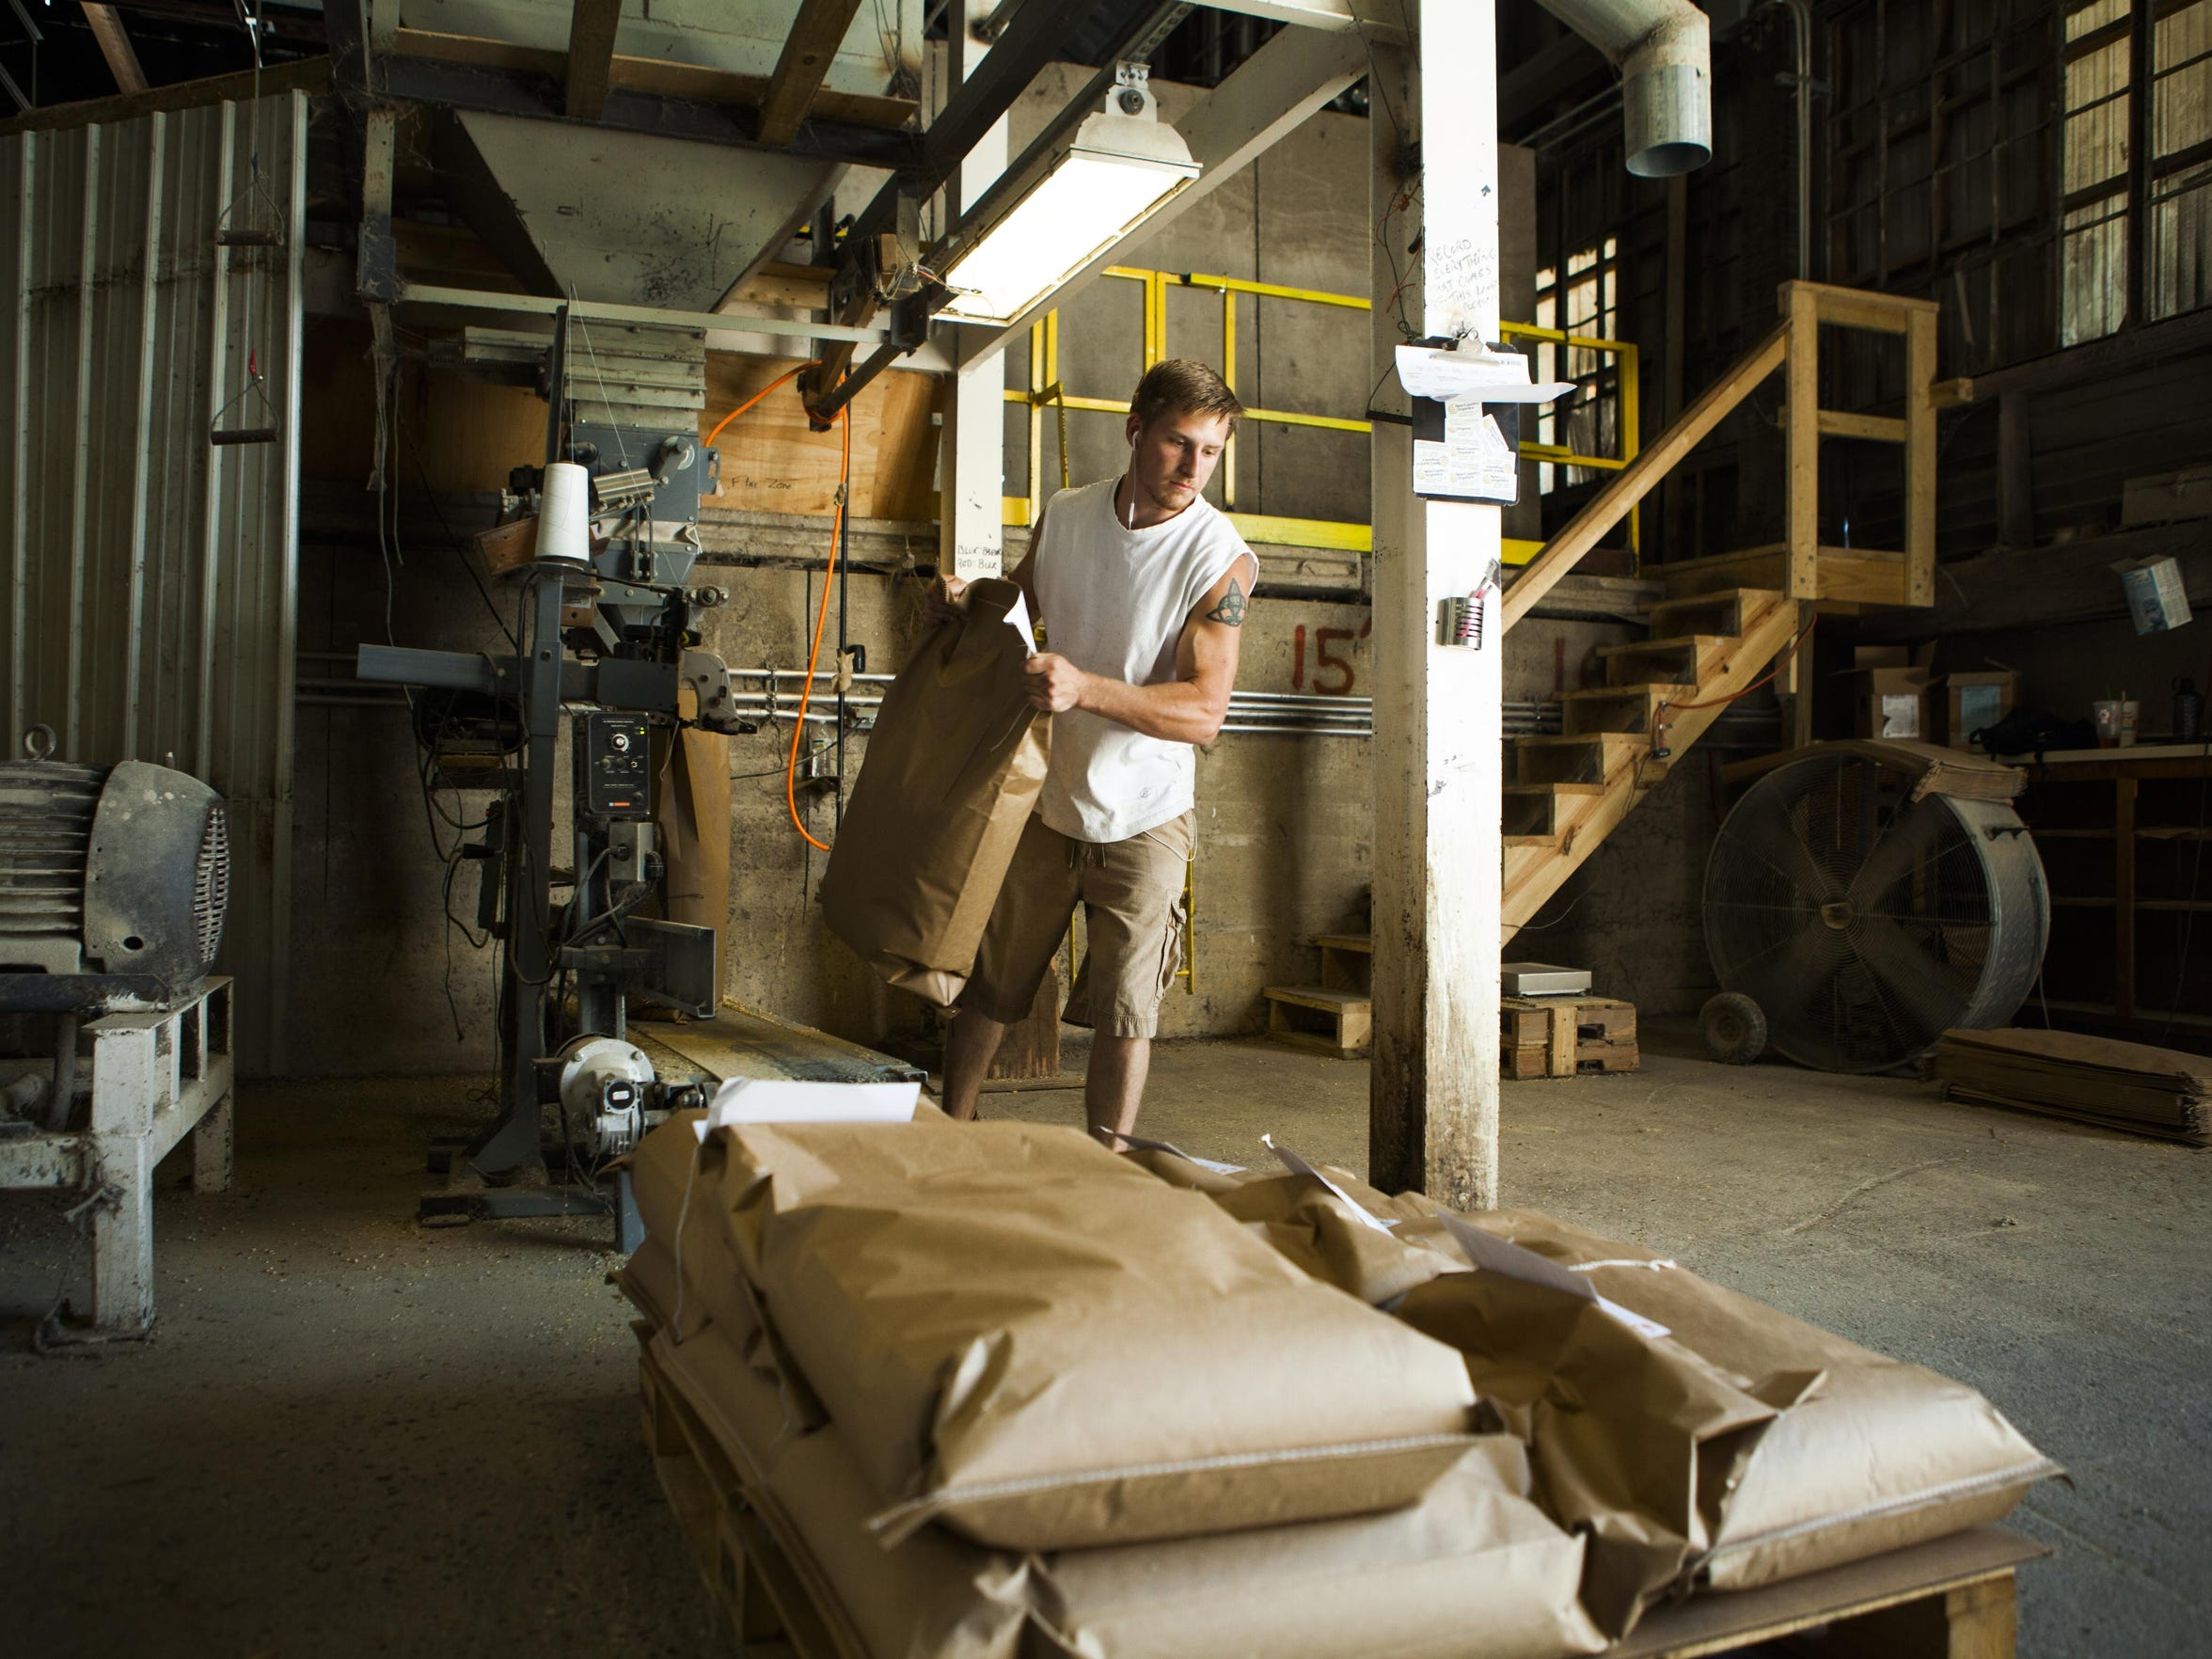 William Rochefort stacks feed bags underneath New Country Organics' mill in Waynesboro on Aug. 25, 2015.